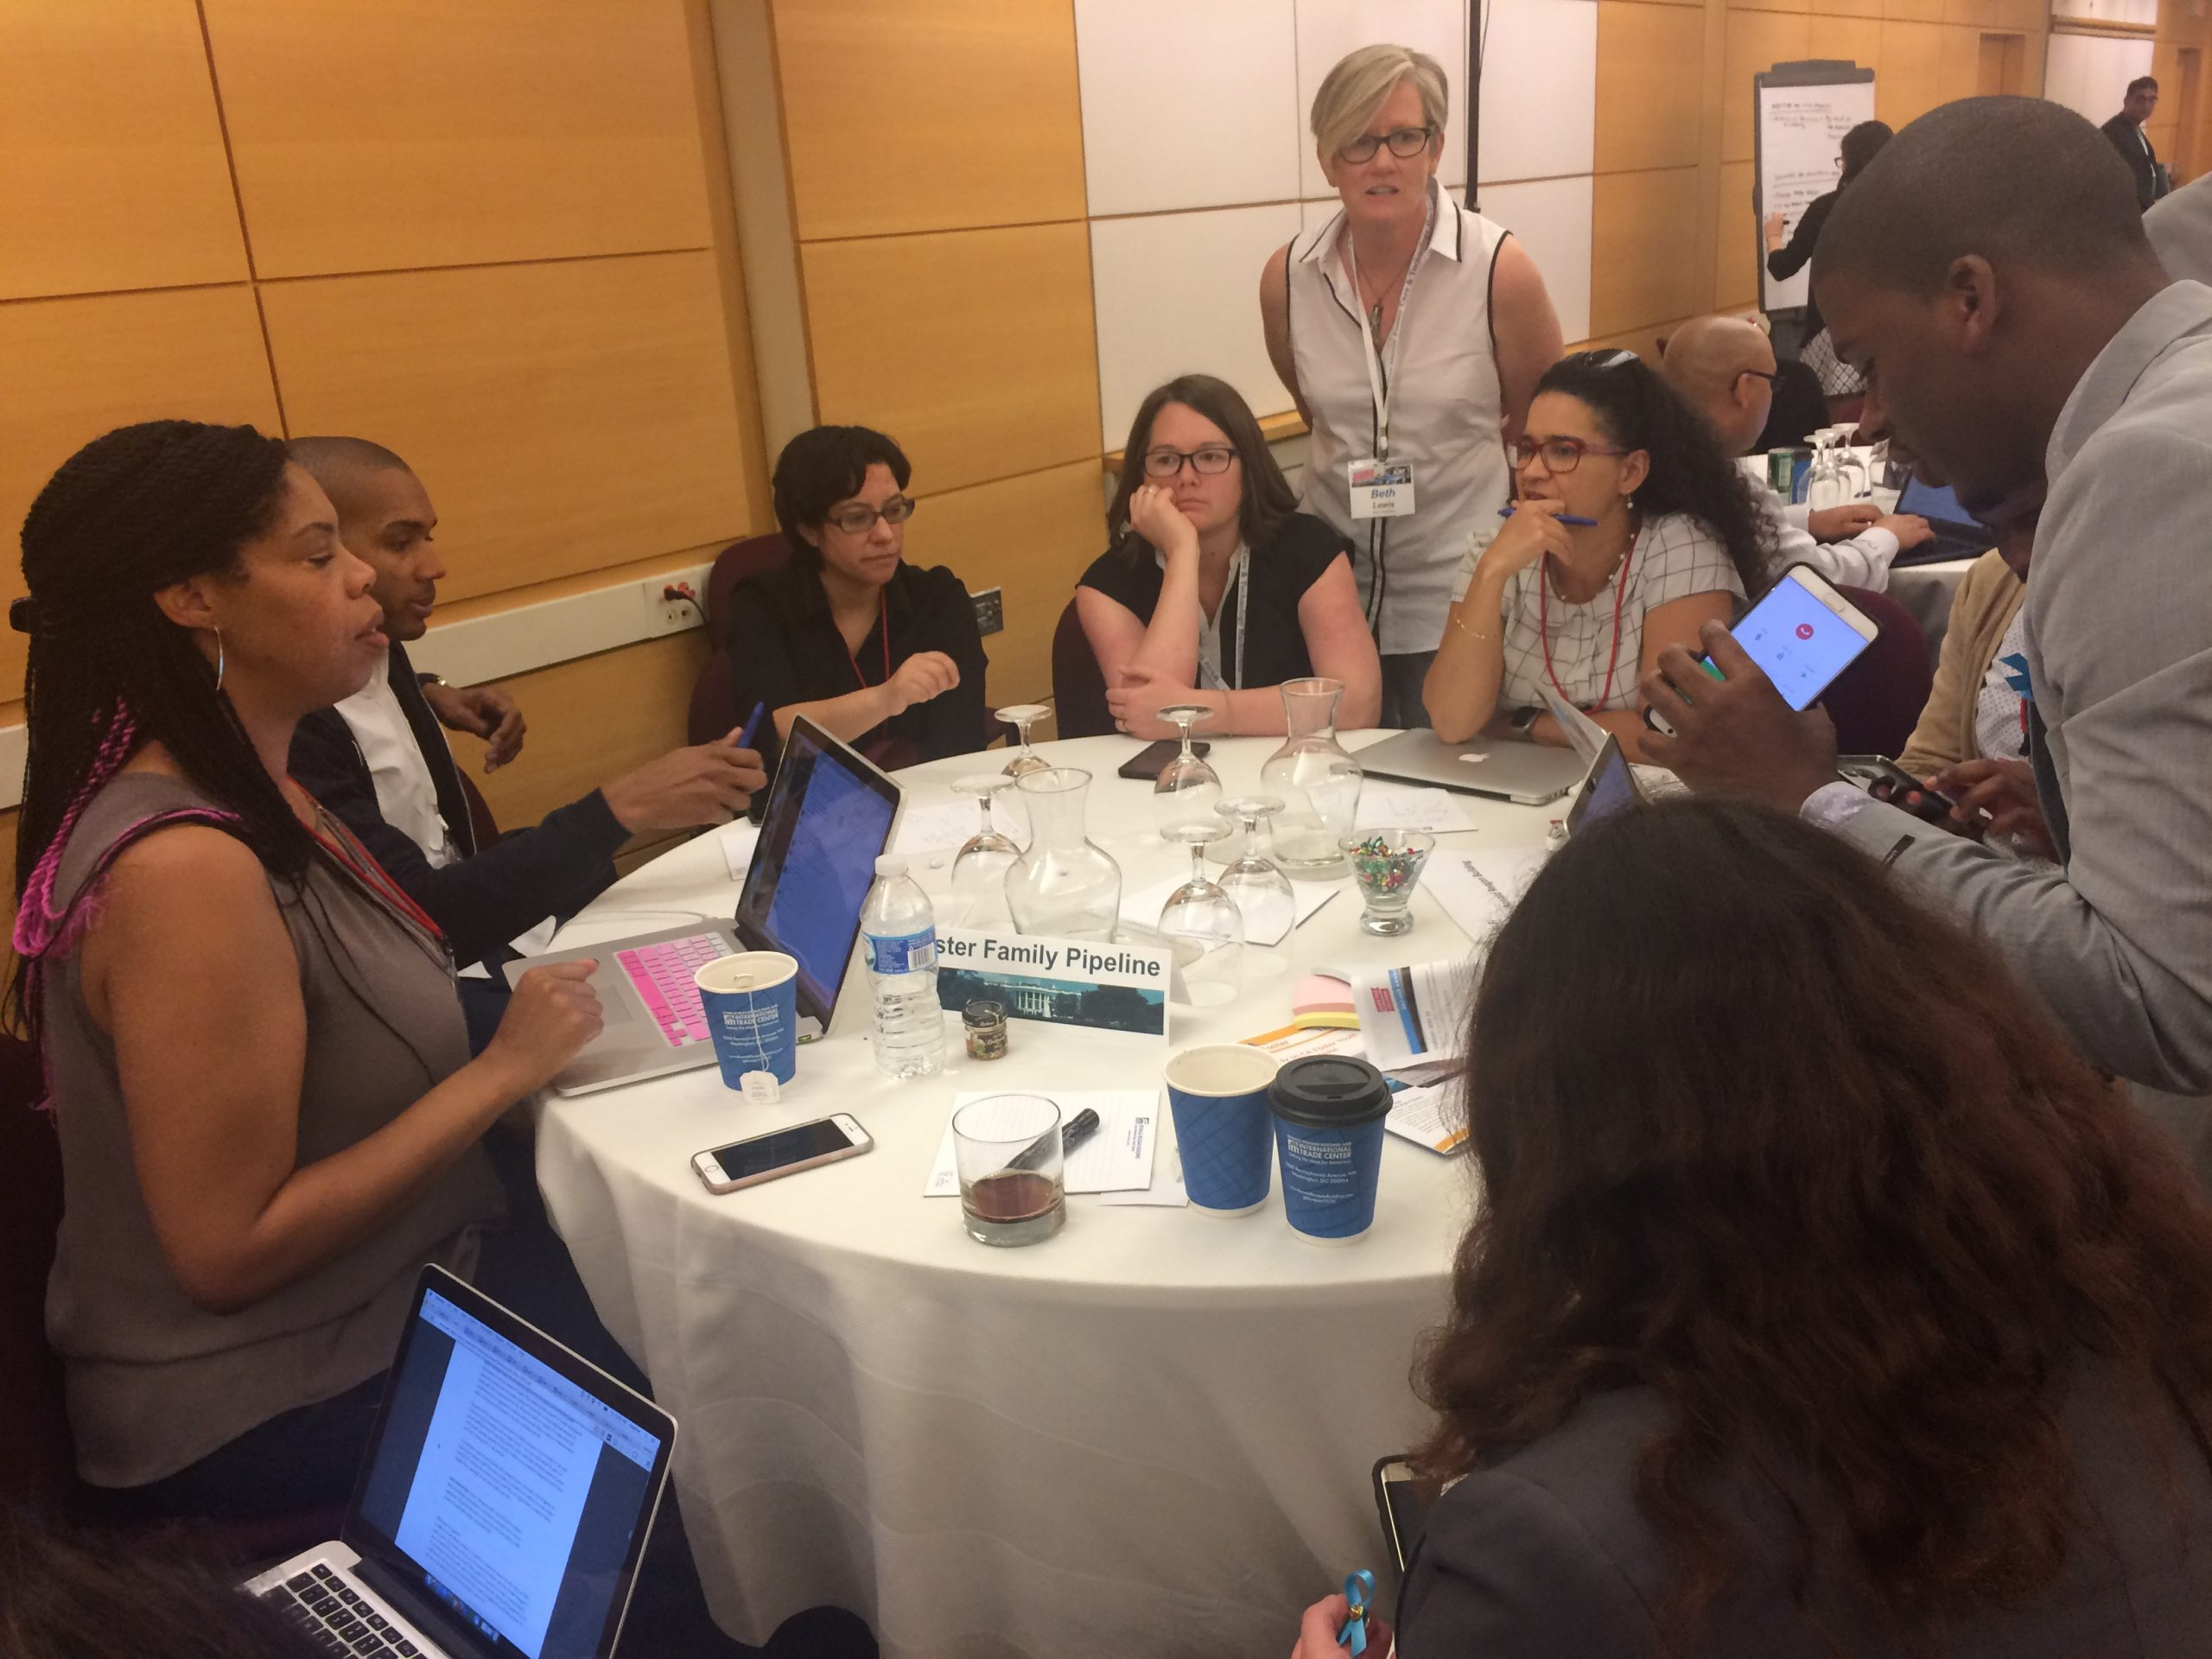 White House Hackathon for Foster Care 2016